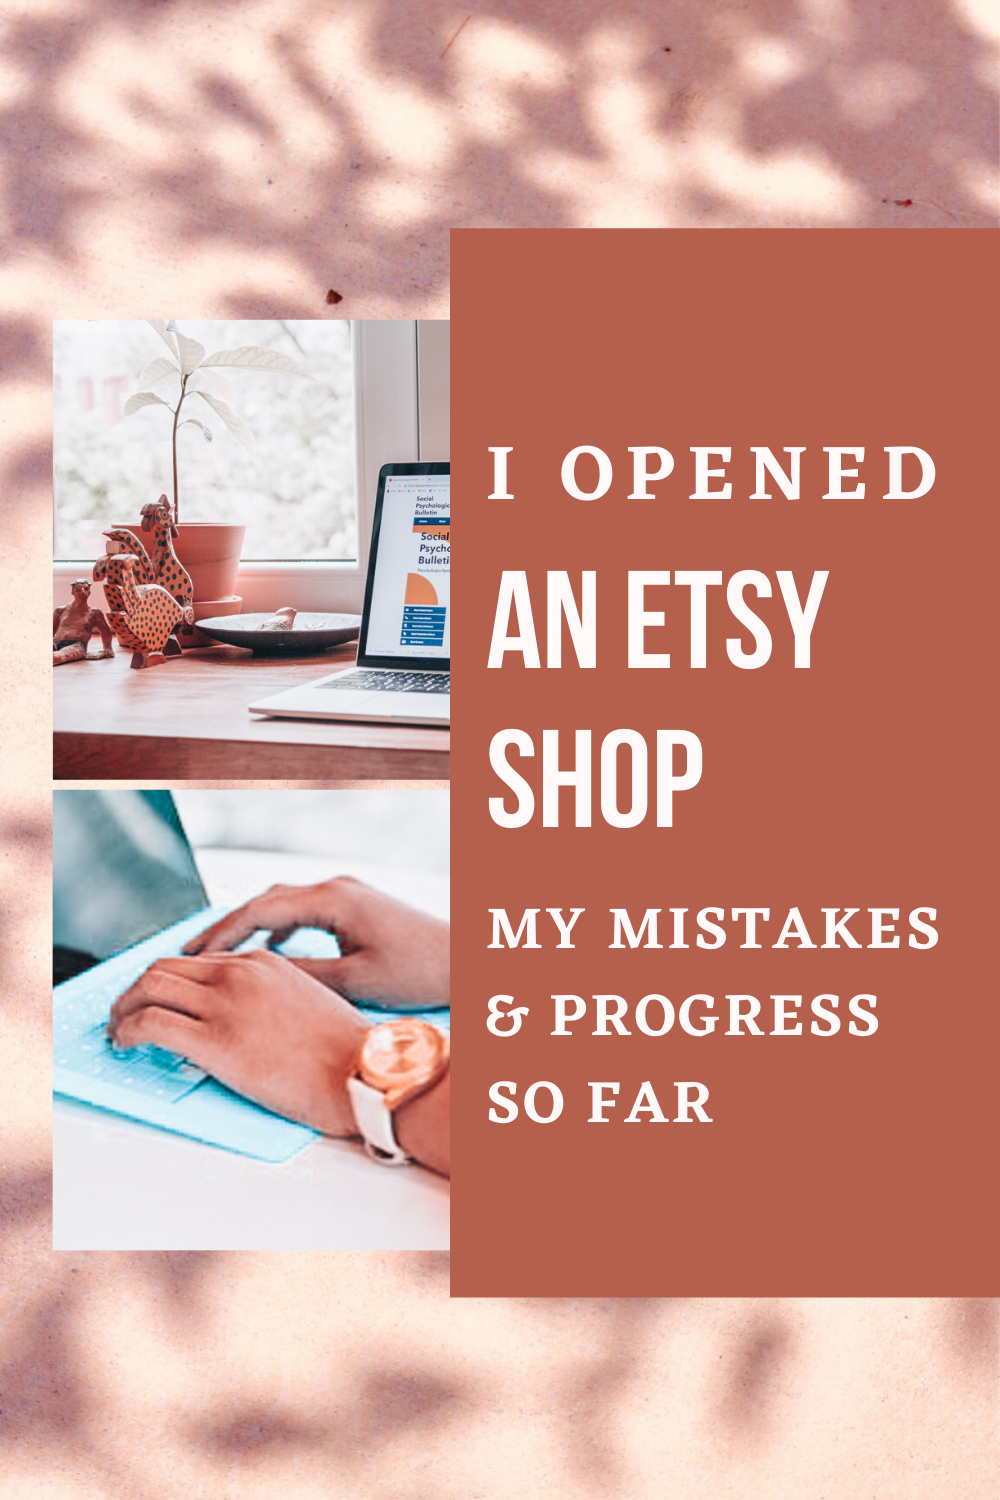 My mistakes opening an etsy shop